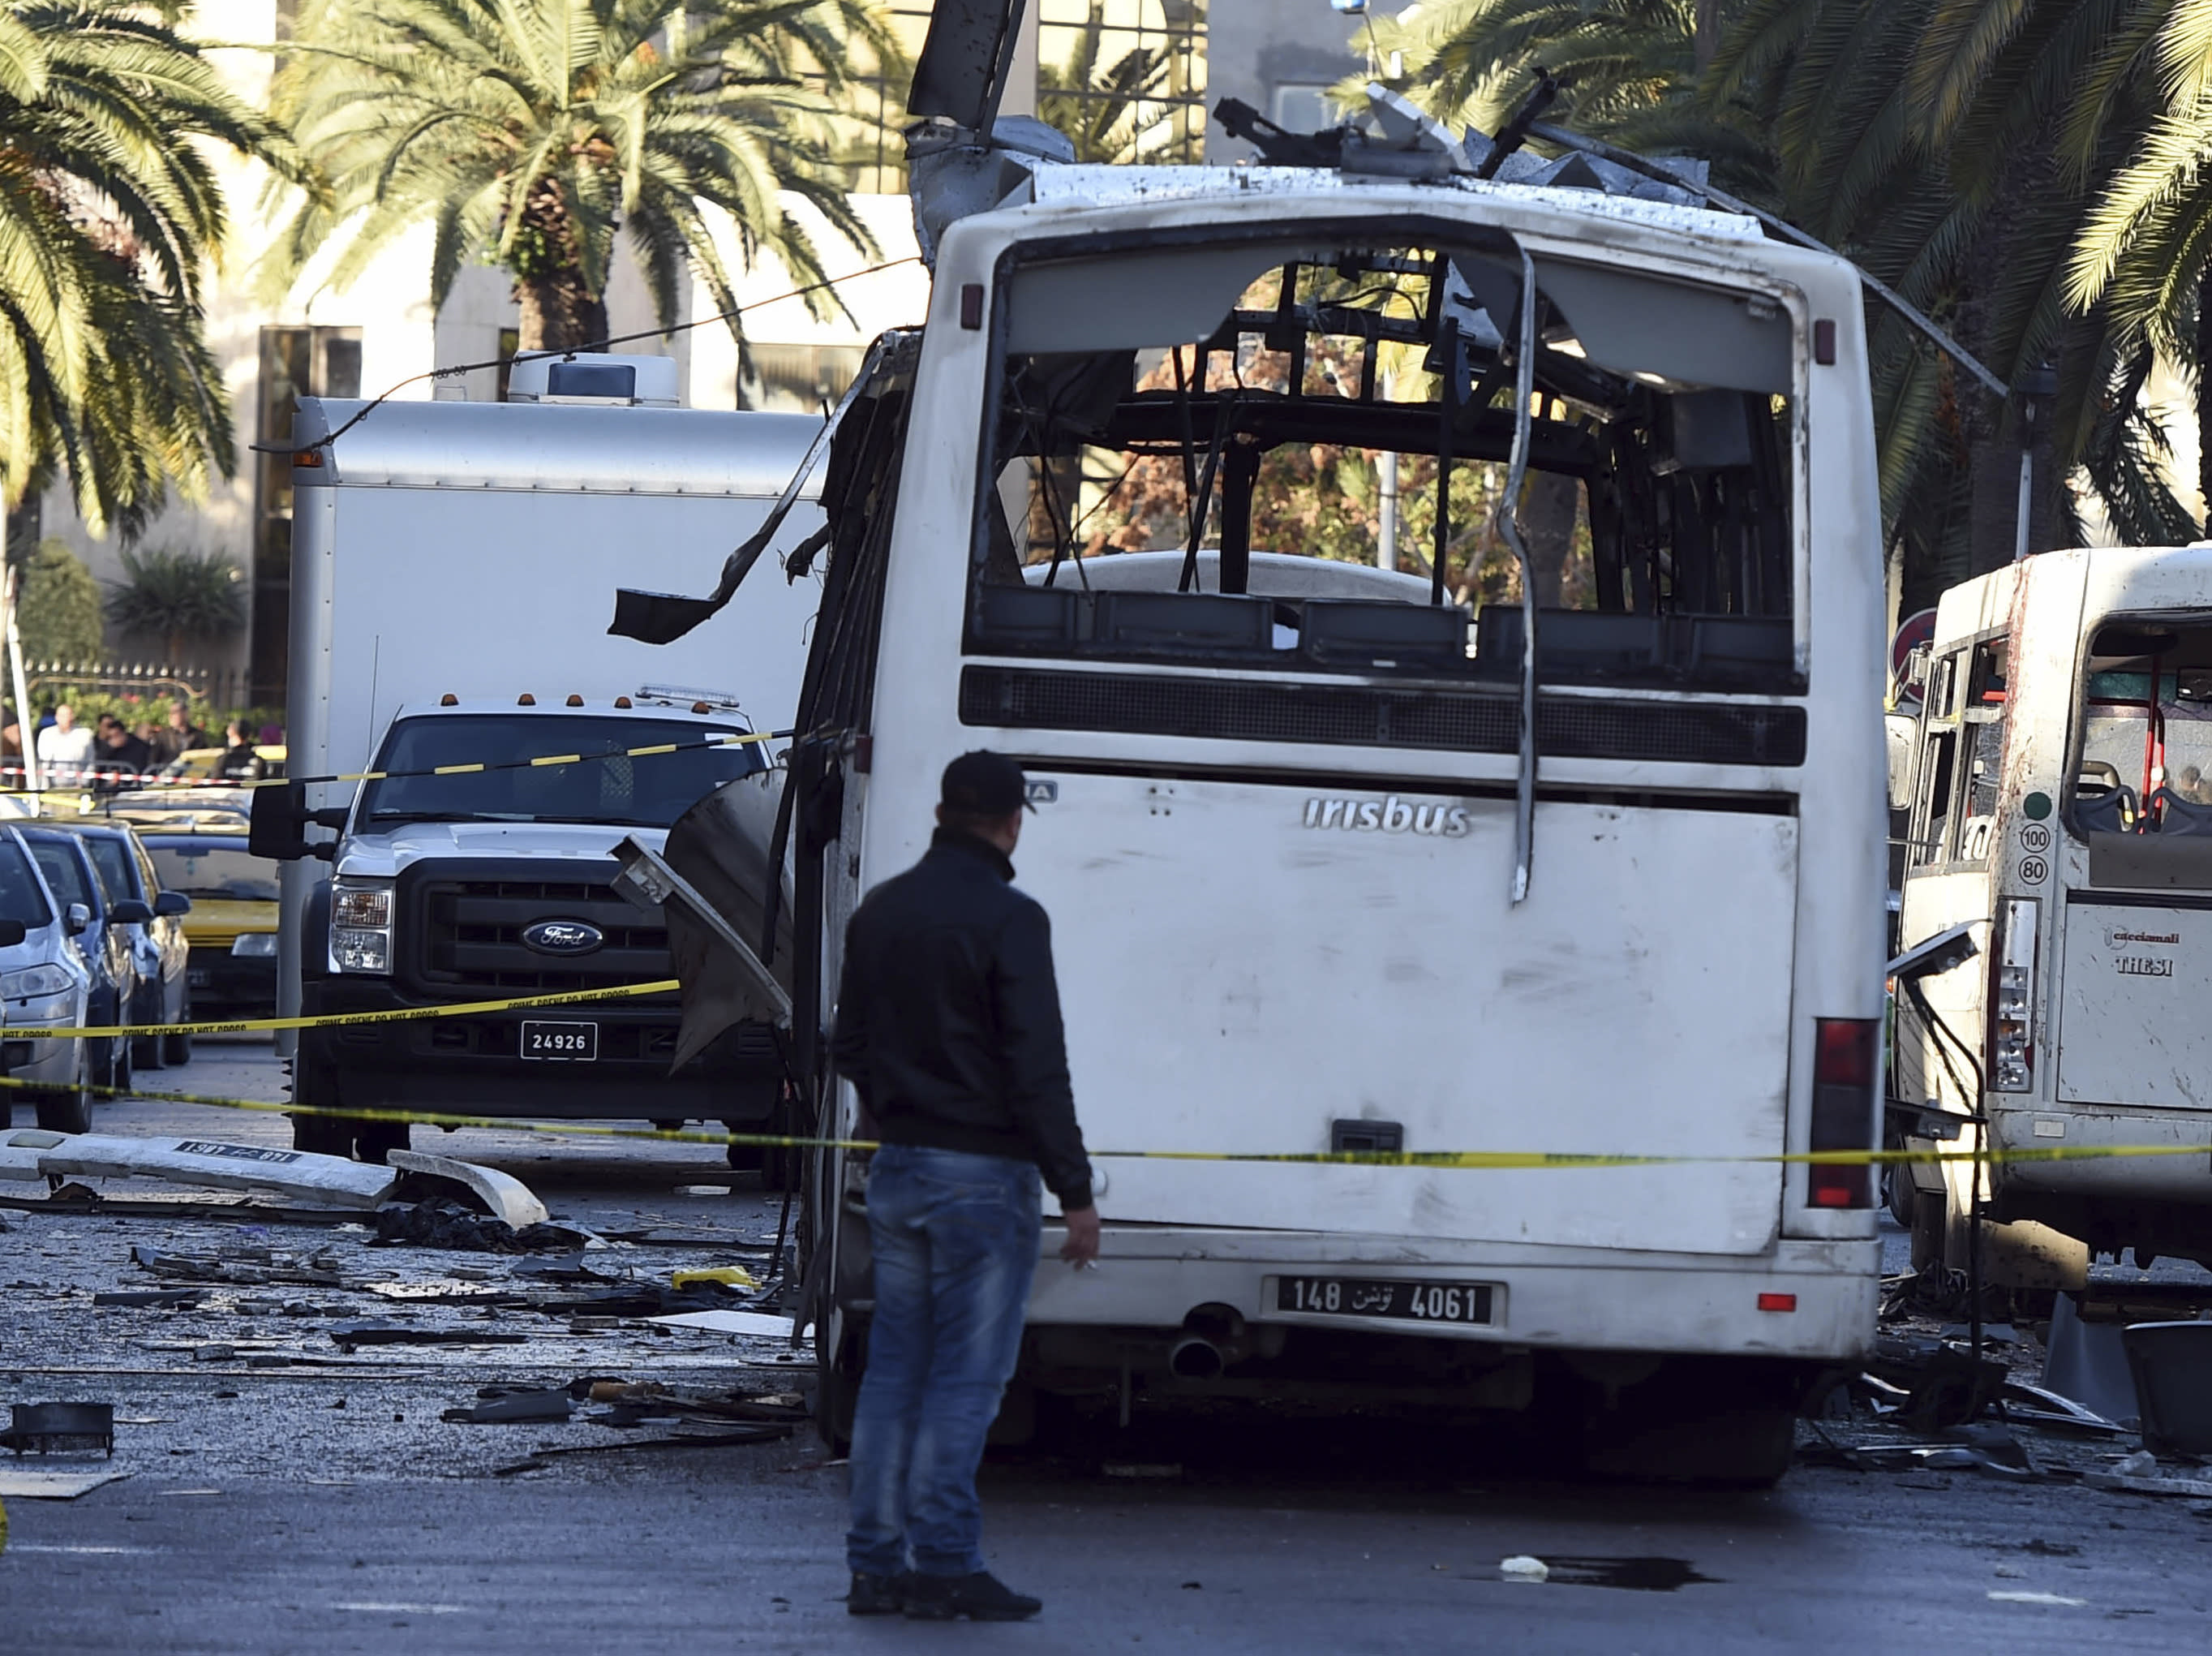 Tunisia detains 30, identifies bomber after attack